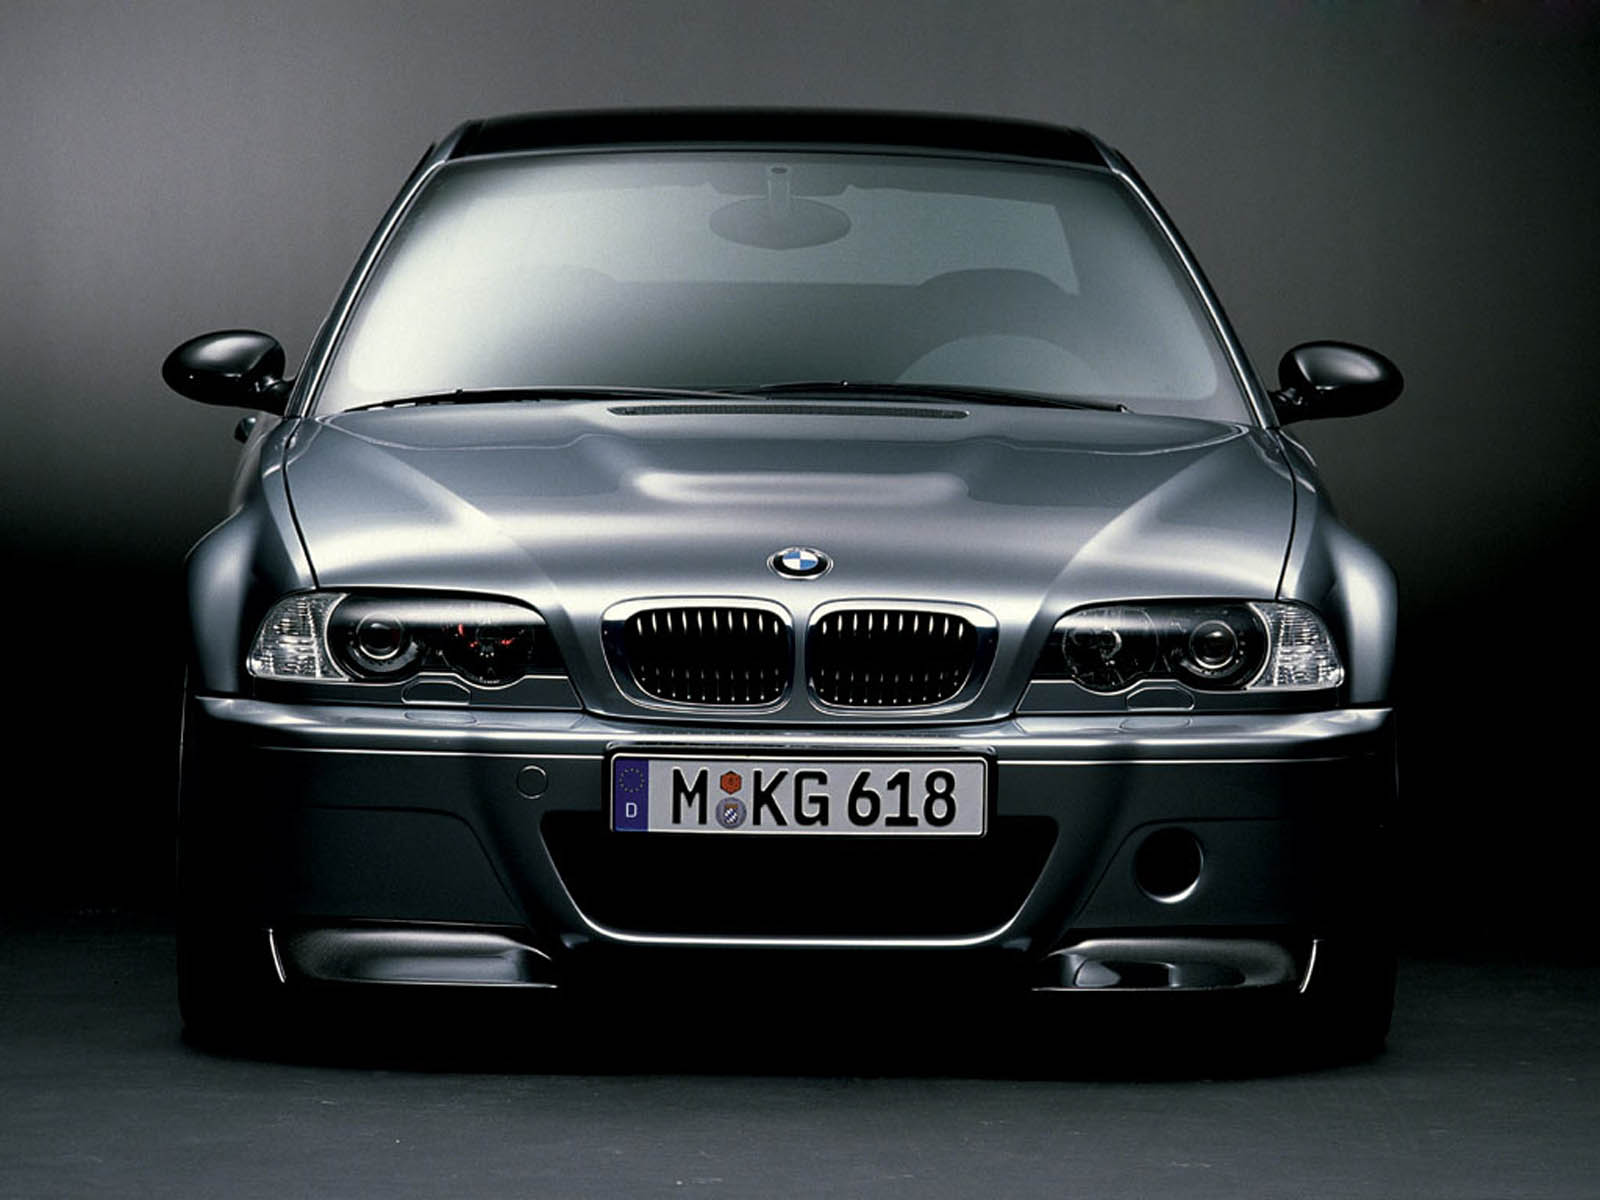 Bmw e46 m3 wallpaper iphone 6 25 page 2 of 3 dzbc download voltagebd Images